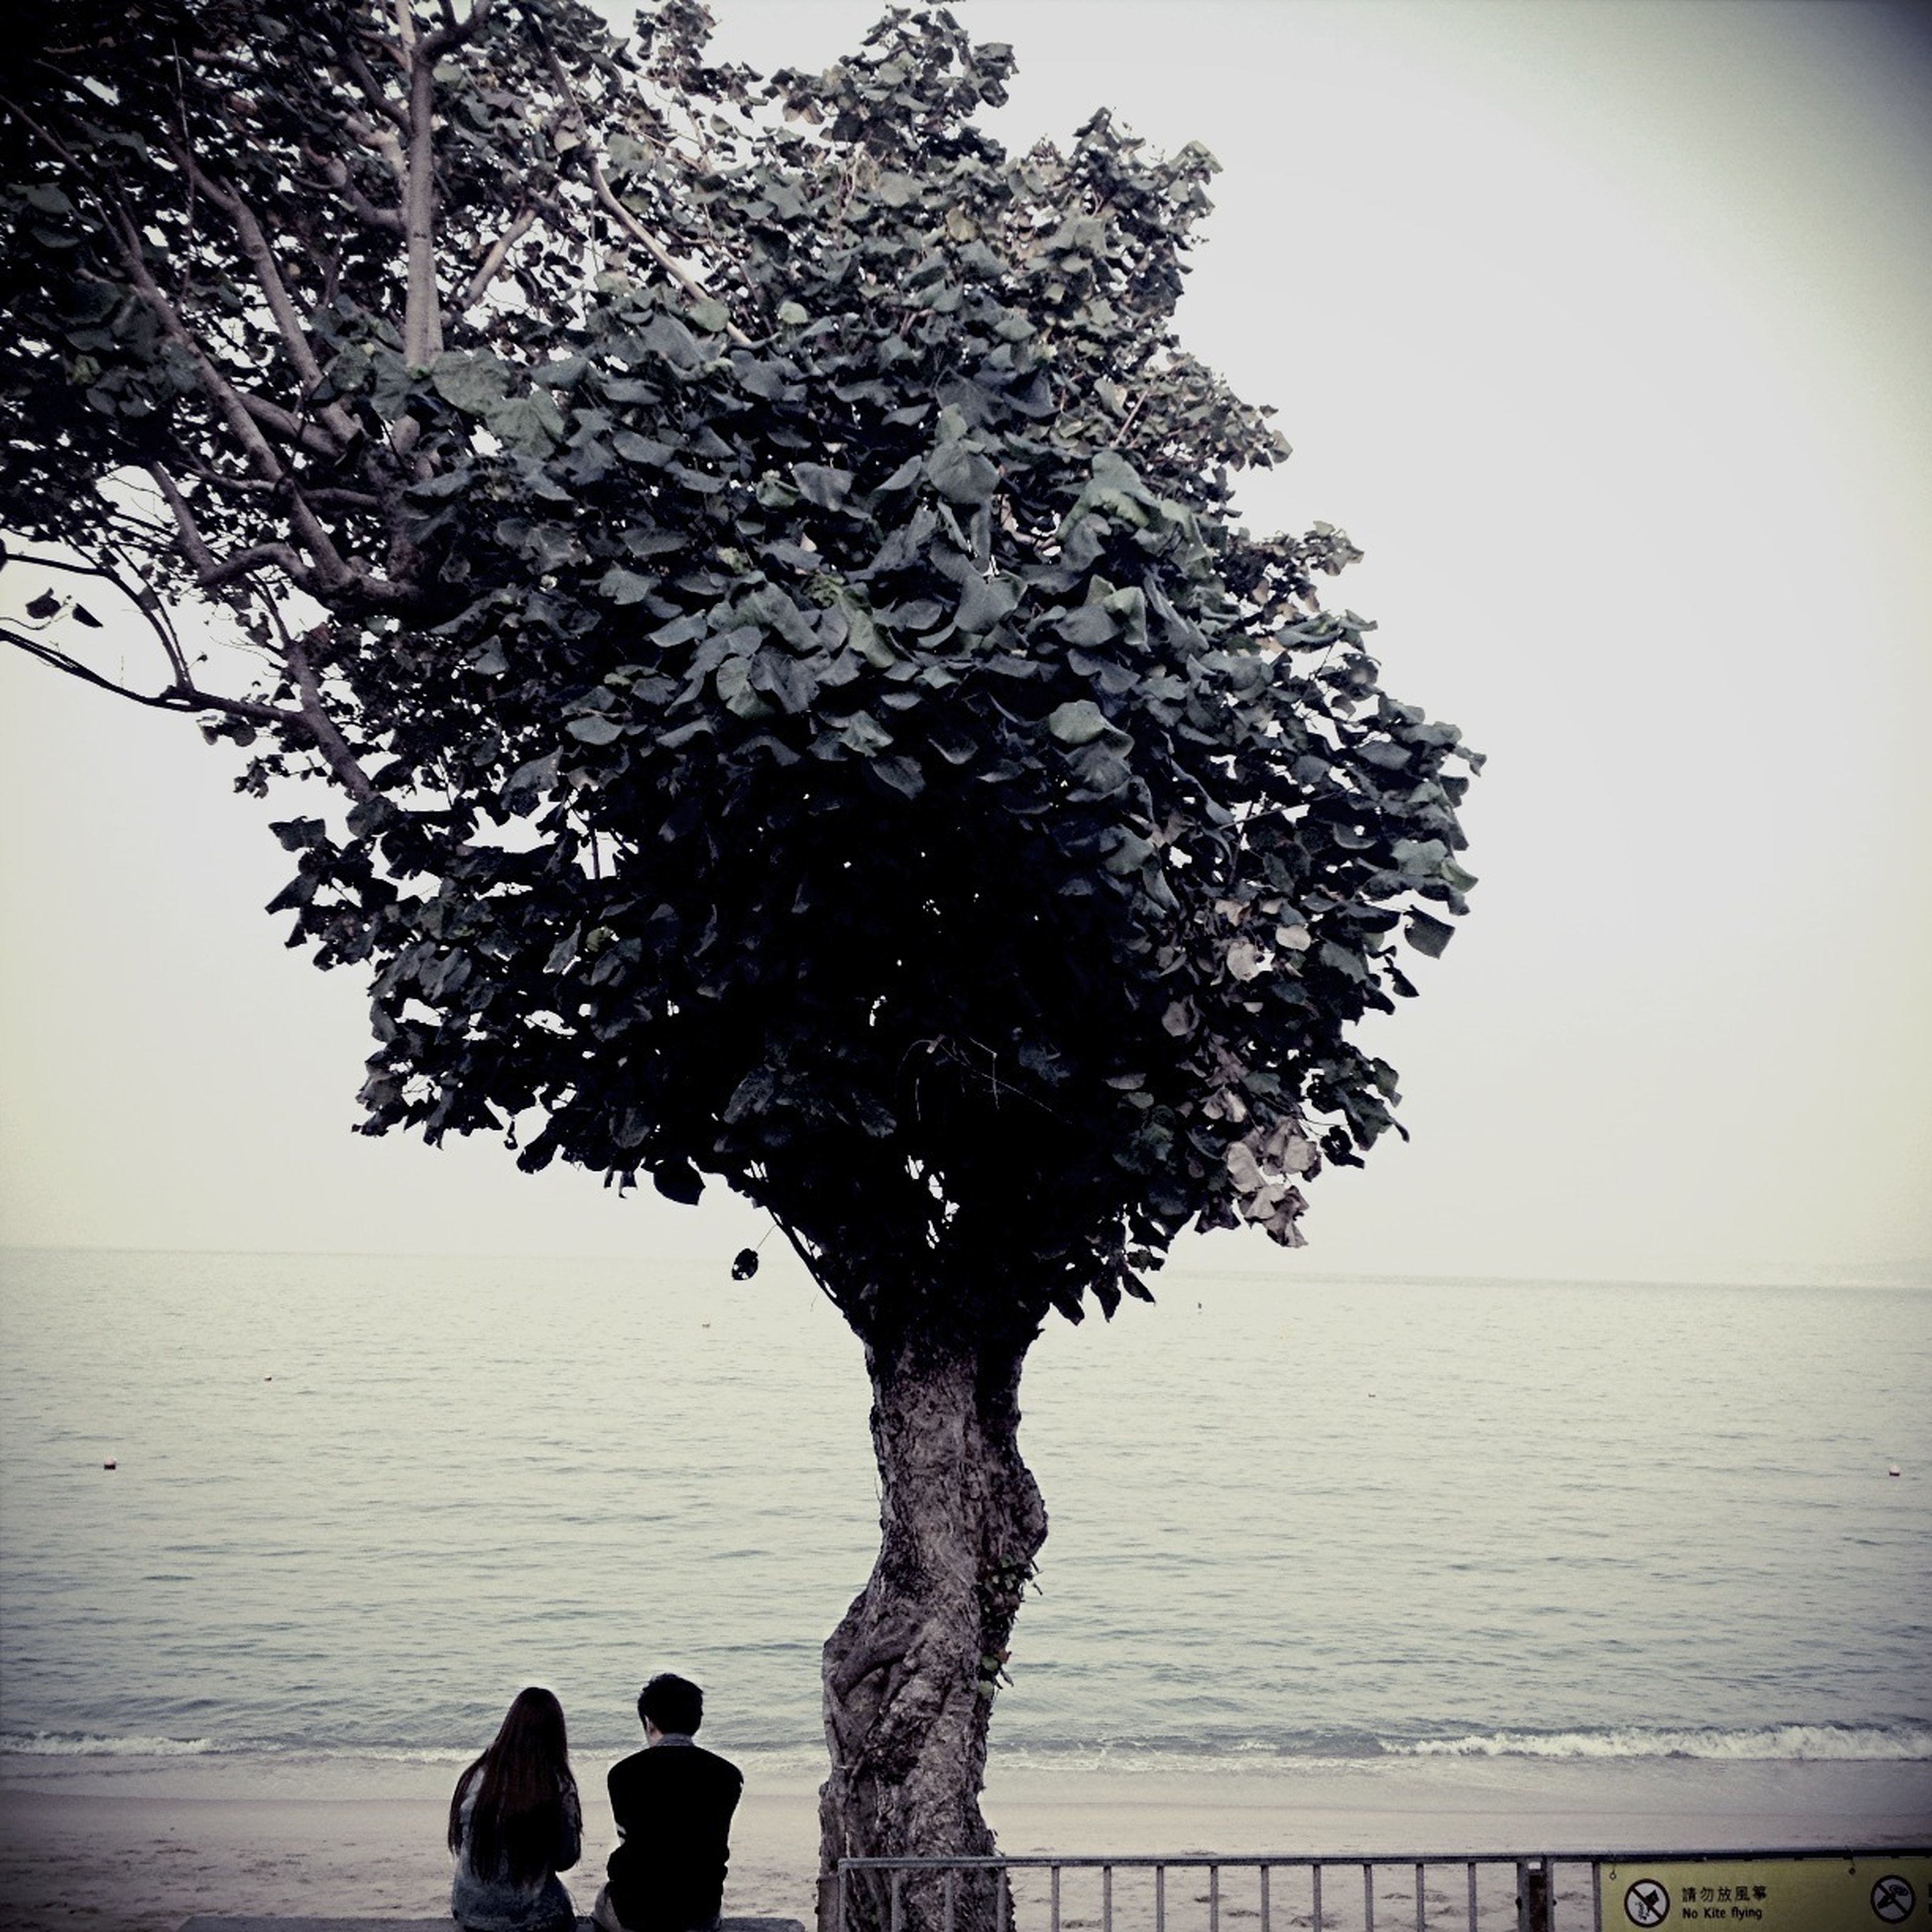 water, sea, tree, horizon over water, nature, tranquility, beauty in nature, lifestyles, standing, men, branch, tranquil scene, leisure activity, sky, person, scenics, silhouette, clear sky, growth